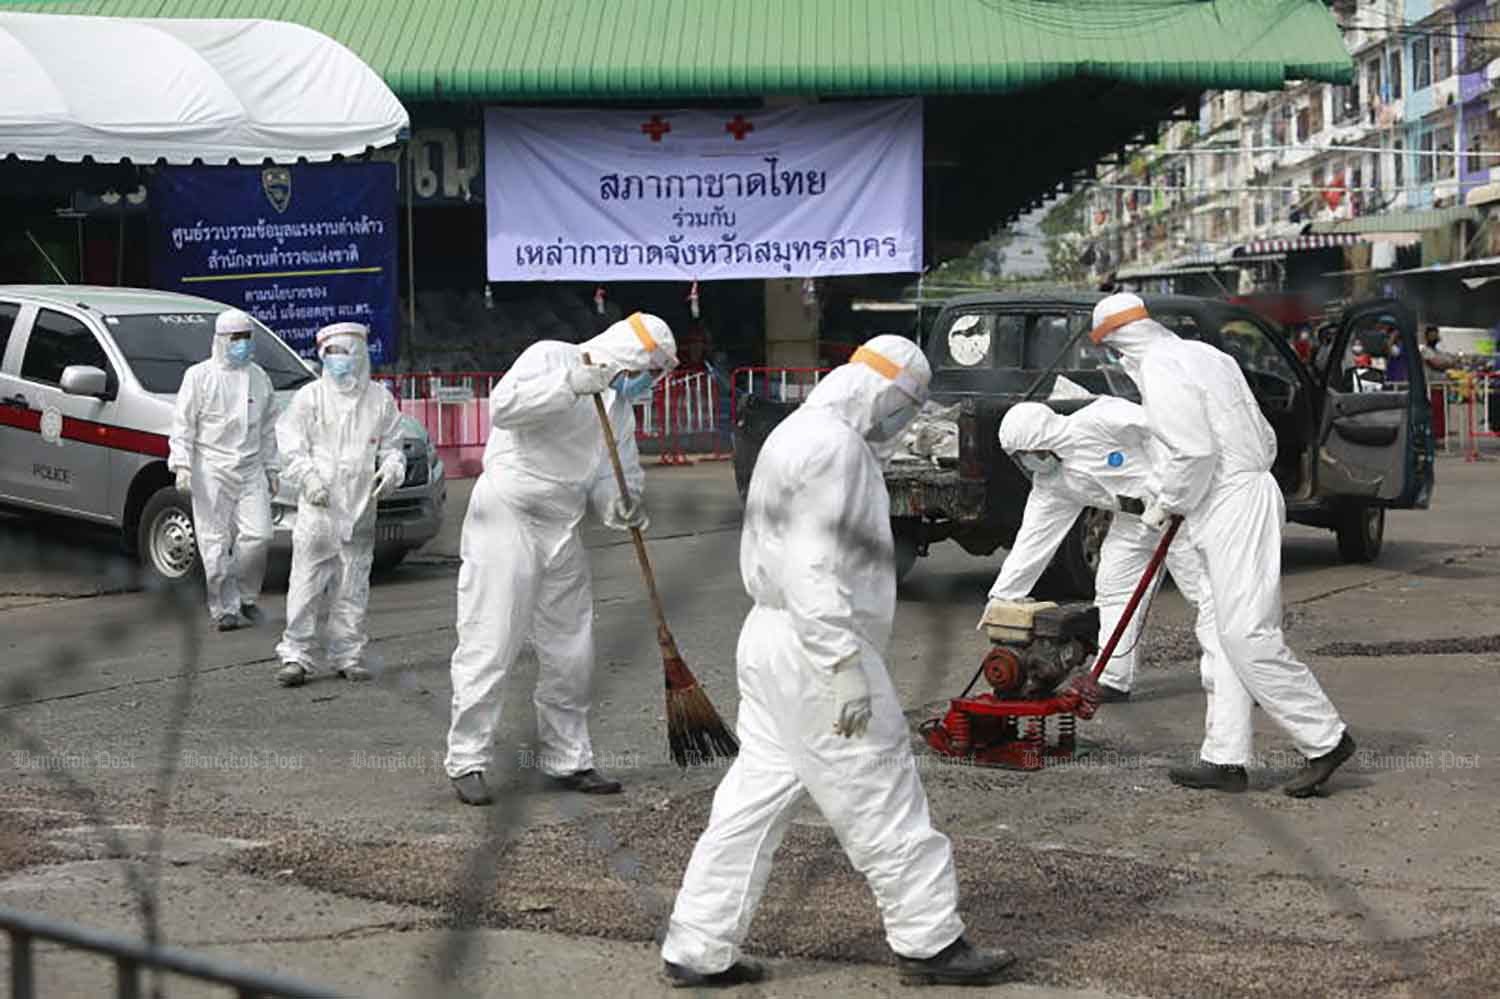 Disease control workers are on duty at the Central Shrimp Market in Muang district of Samut Sakhon last December. Authorities expect its reopening next Monday. (Photo by Arnun Chonmahatrakool)